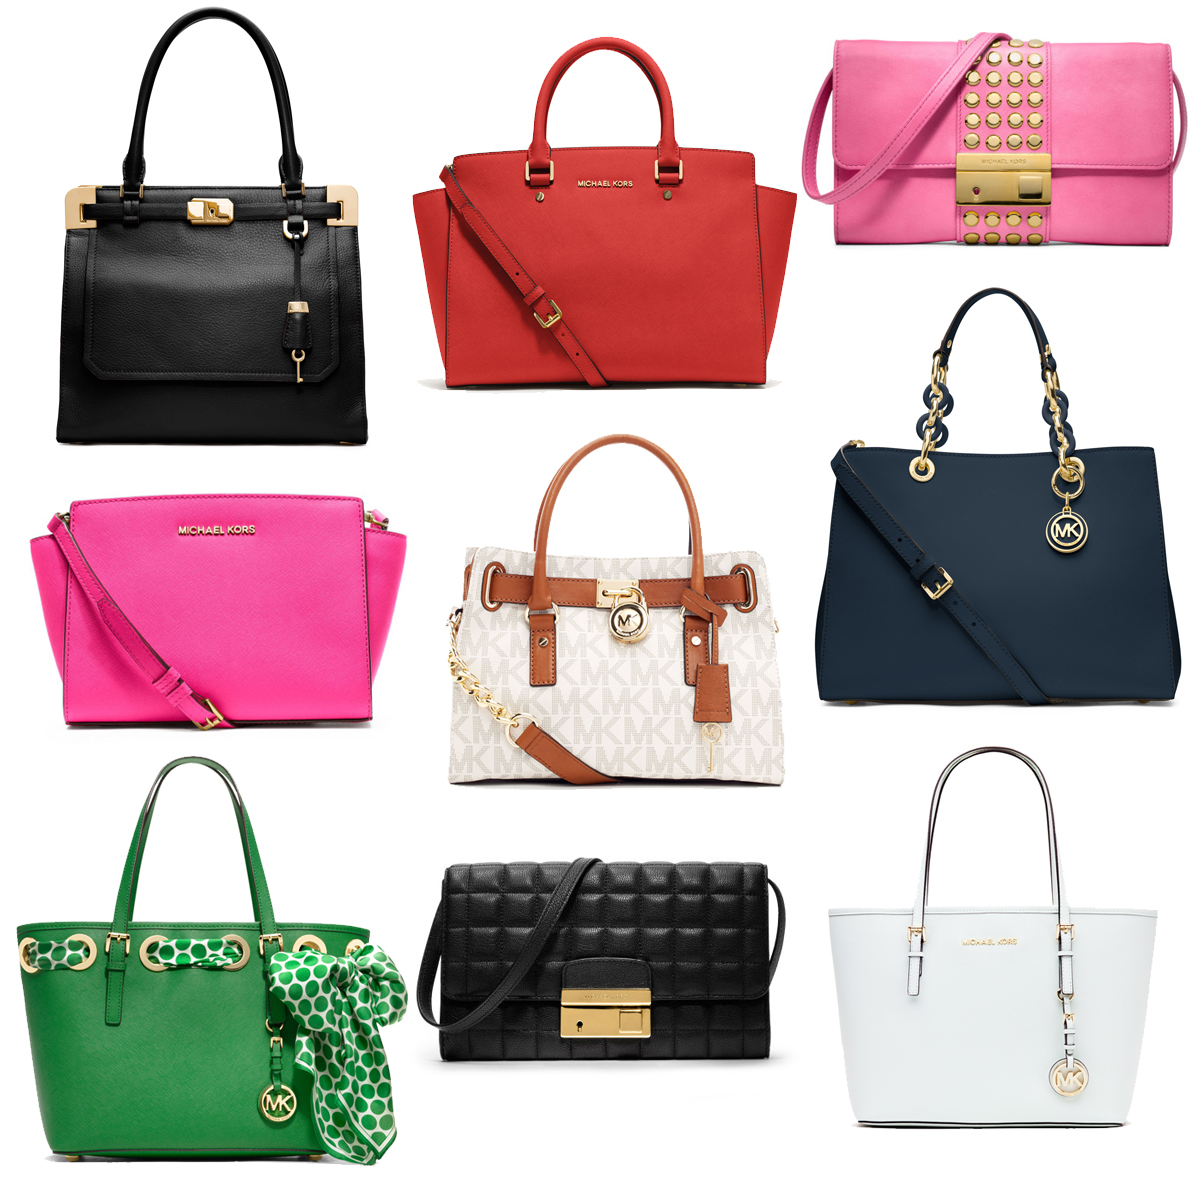 Michael Kors Handbags 2017